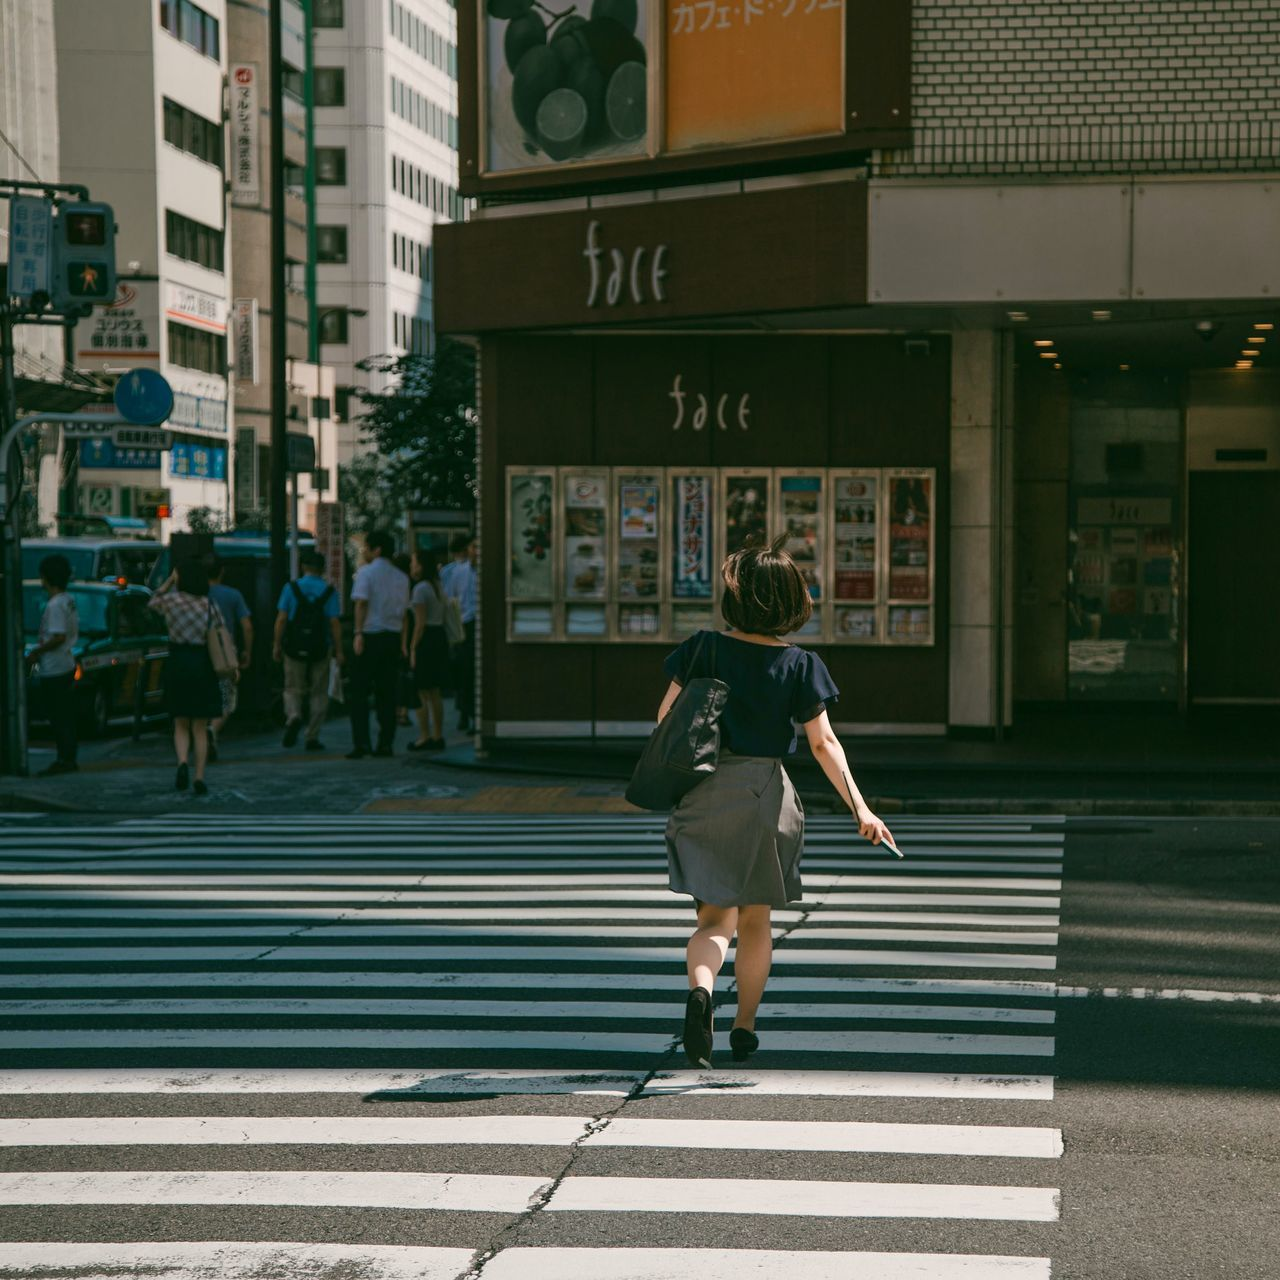 Streets of Tokyo Tokyo Street Photography Tokyo Japan Street Photography City Rear View Outdoors Lost In City Light Collection Light And Shadow Road Zebra Crossing Bustle One Woman Only Walking One Person Architecture City Life